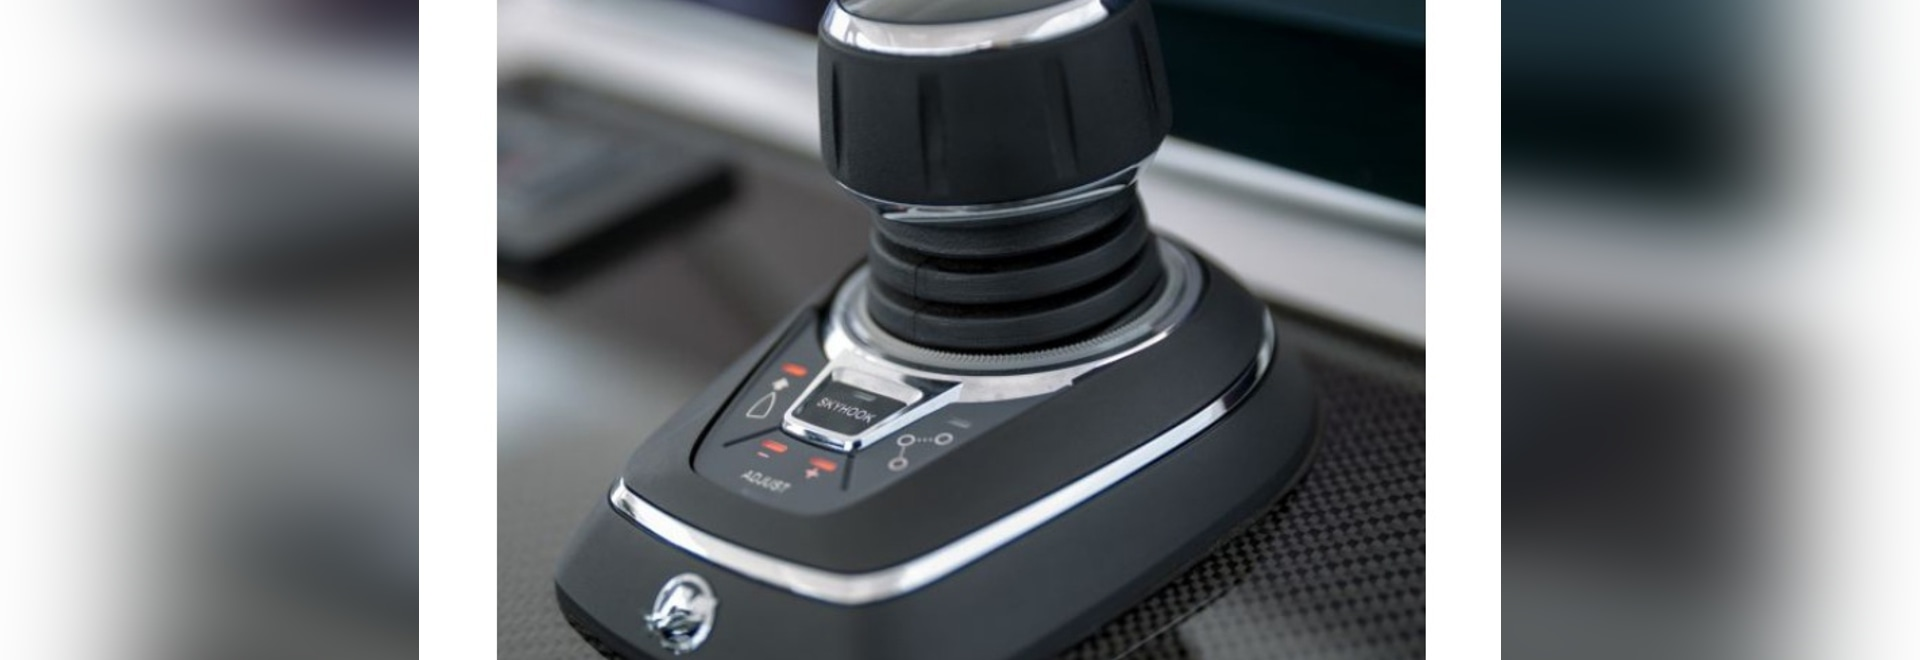 Mercury and SeaStar Solutions have collaborated to provide a joystick package